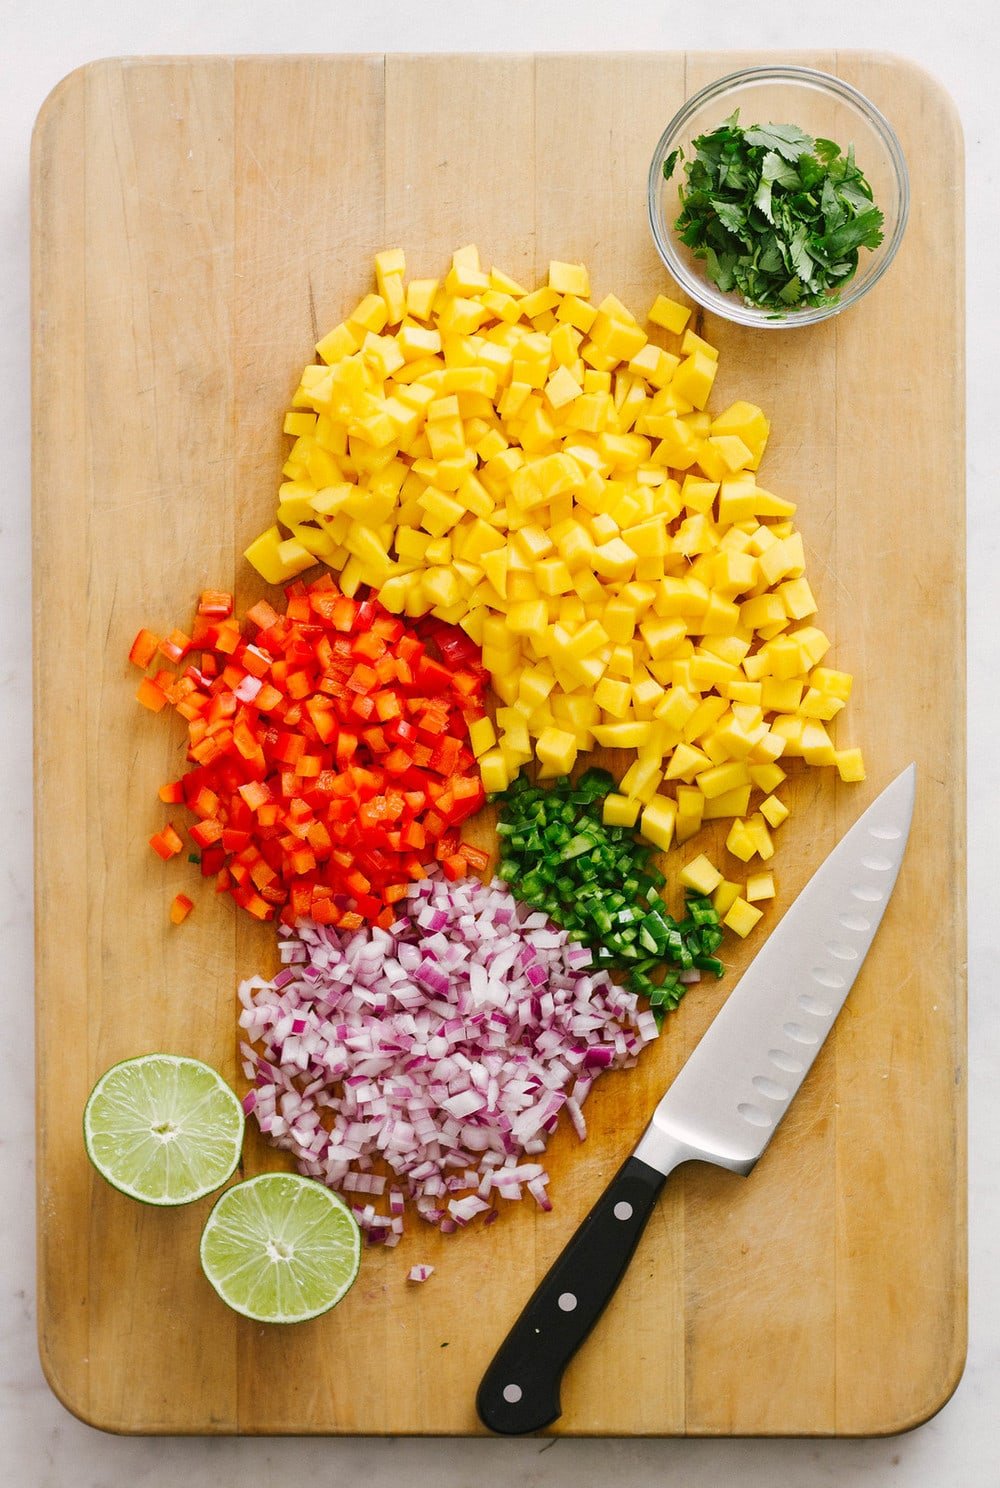 mango salsa ingredients on a cutting board, mangos, red pepper, onion, jalapeno, cilantro and lime